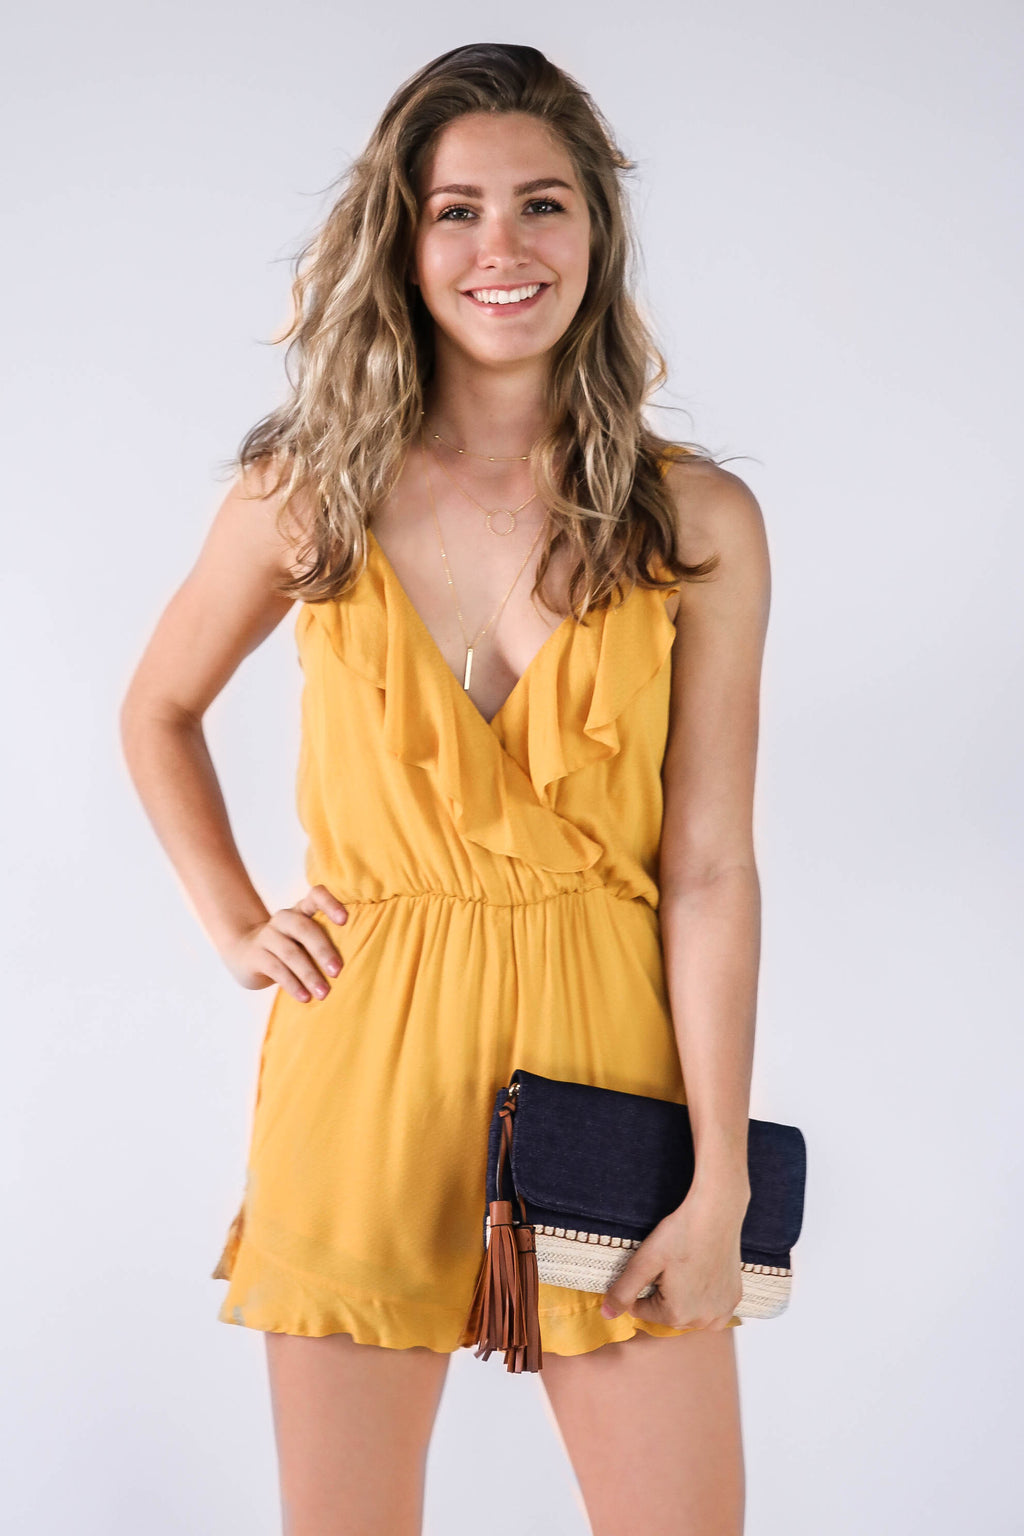 Double Trouble Romper in Marigold